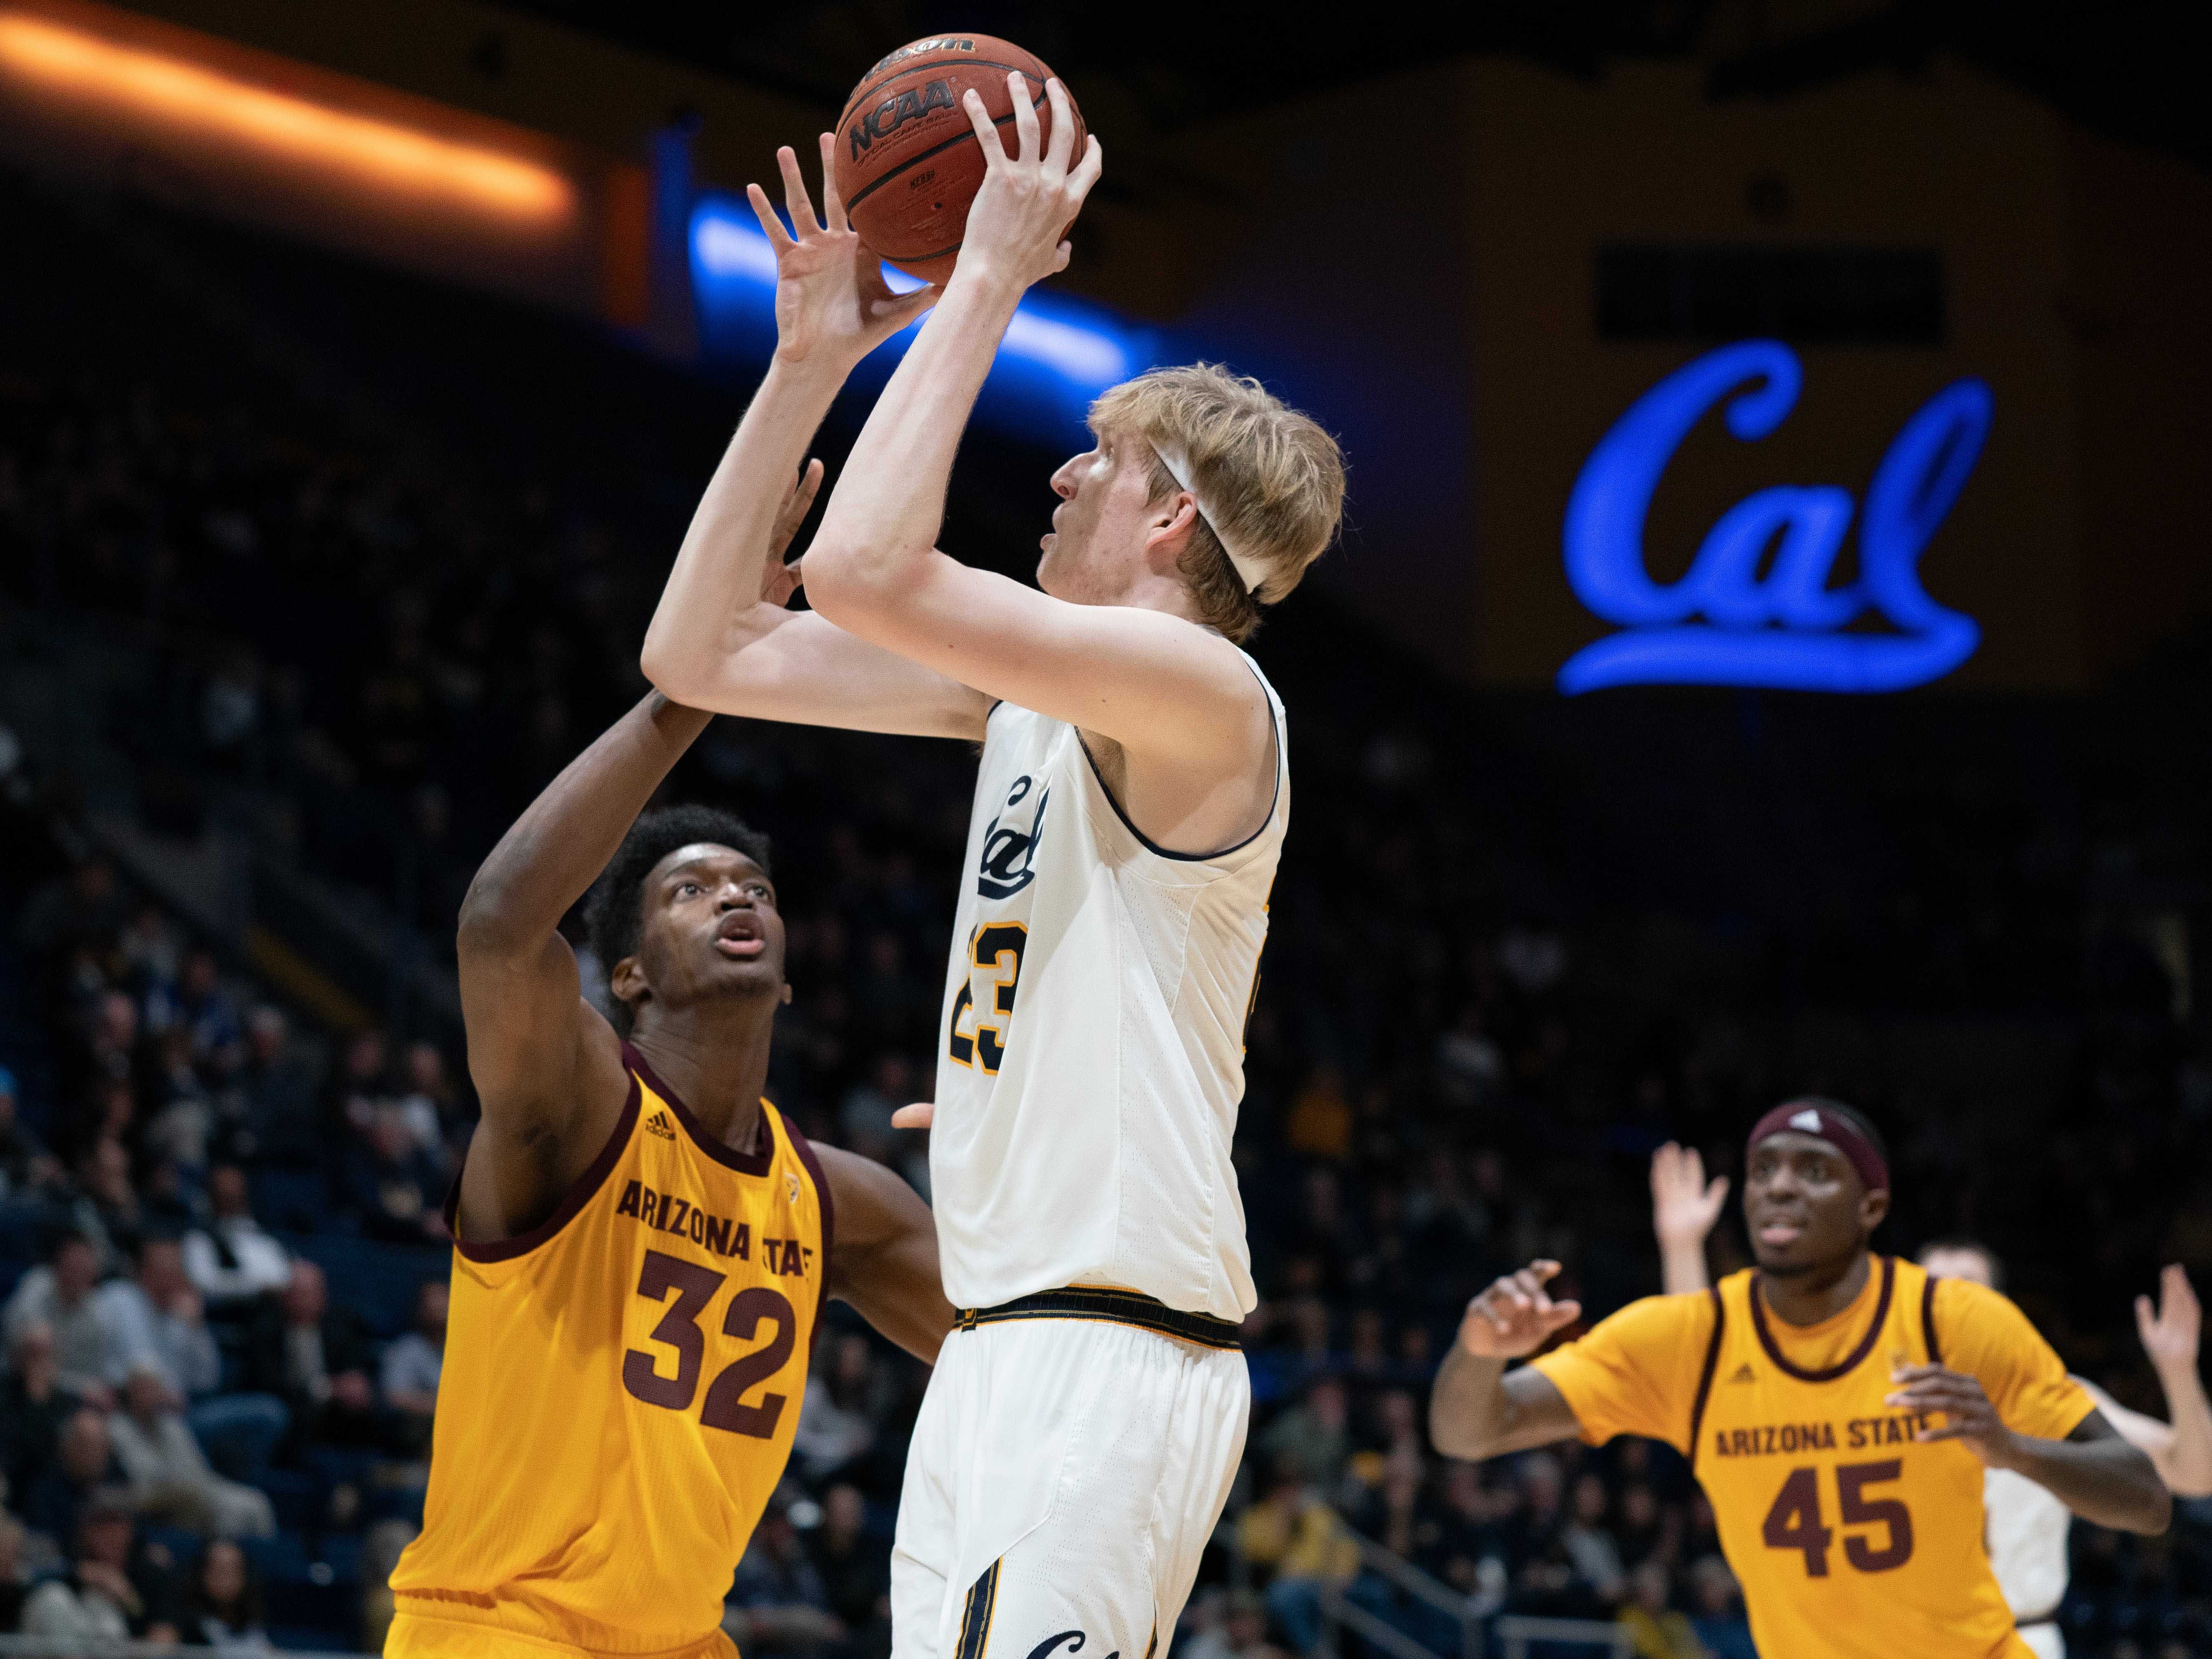 Jan 9, 2019; Berkeley, CA, USA; California Golden Bears center Connor Vanover (23) shoots the basketball against Arizona State Sun Devils forward De'Quon Lake (32) during the first half at Haas Pavilion. Mandatory Credit: Neville E. Guard-USA TODAY Sports